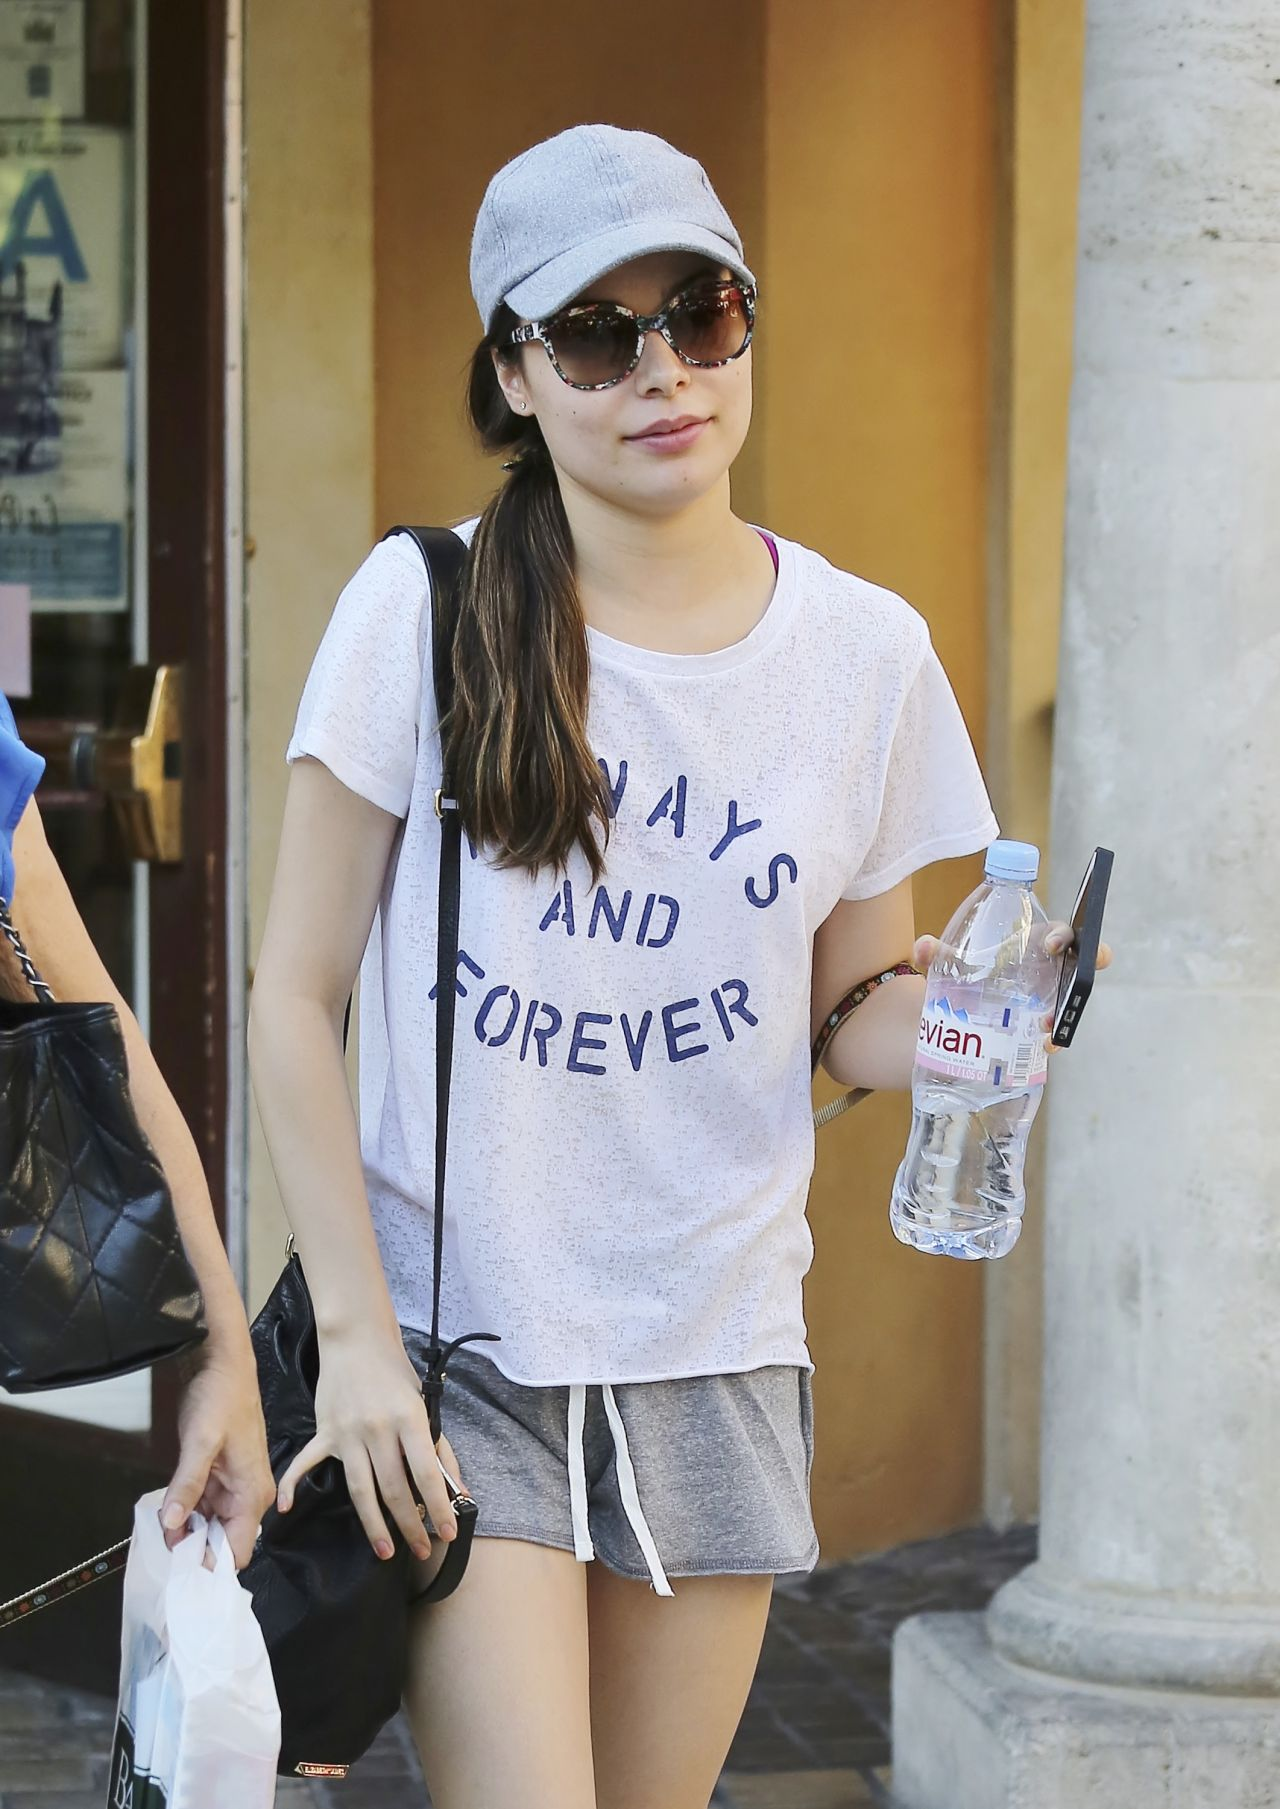 Miranda Cosgrove Leggy in Shorts at The Grove in West Hollywood - August 2014